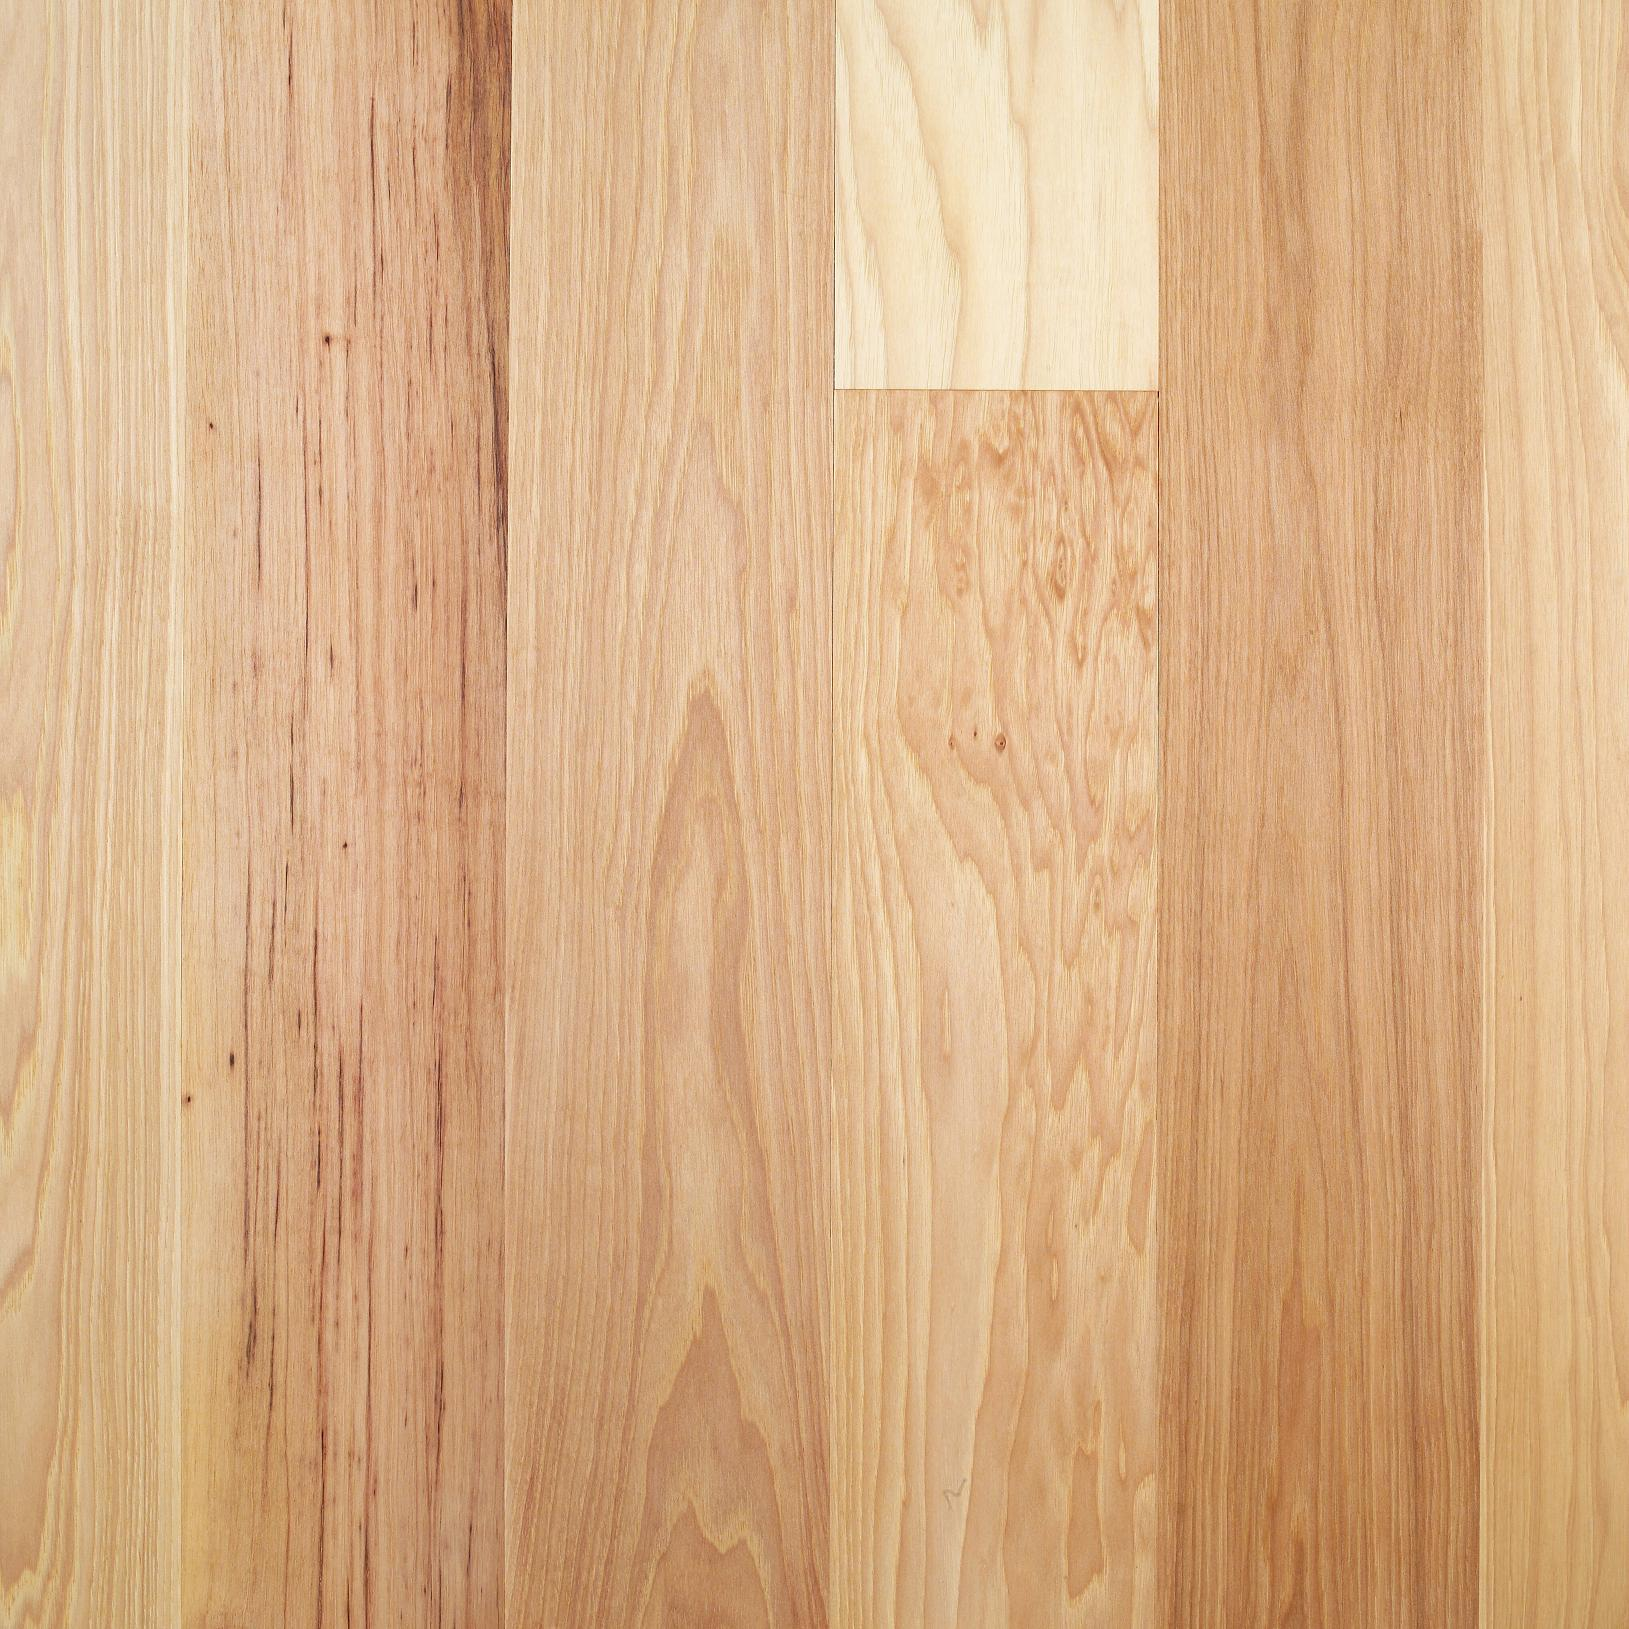 Woodflooringtrends current trends in the wood flooring for Unfinished wood flooring